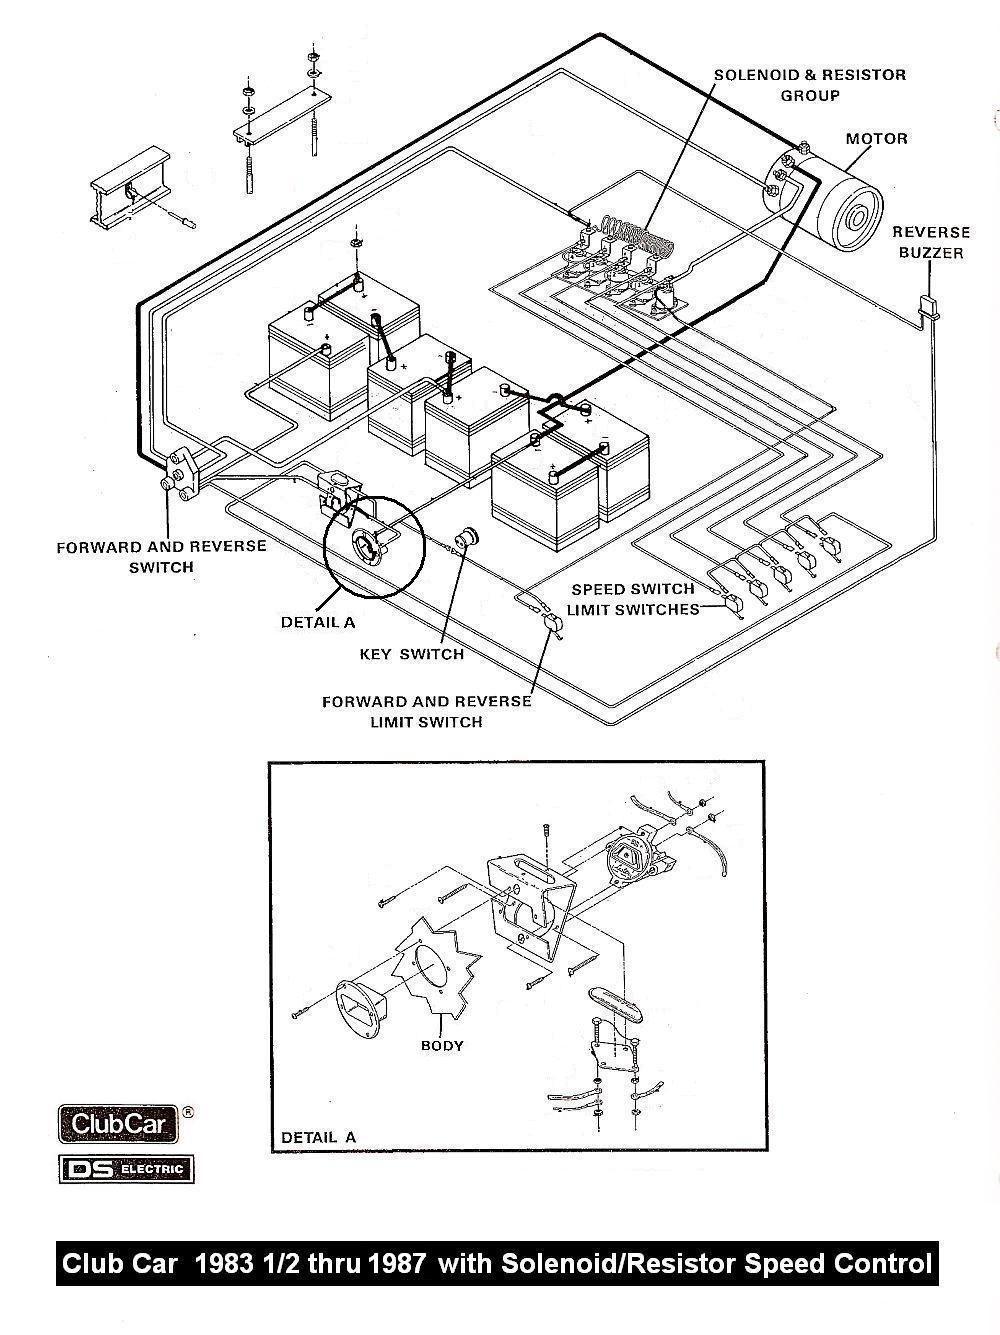 0e8d045370be7682b159825224221faa vintagegolfcartparts com *freezer & crock pot* pinterest 1985 club car electric wiring diagram at bayanpartner.co